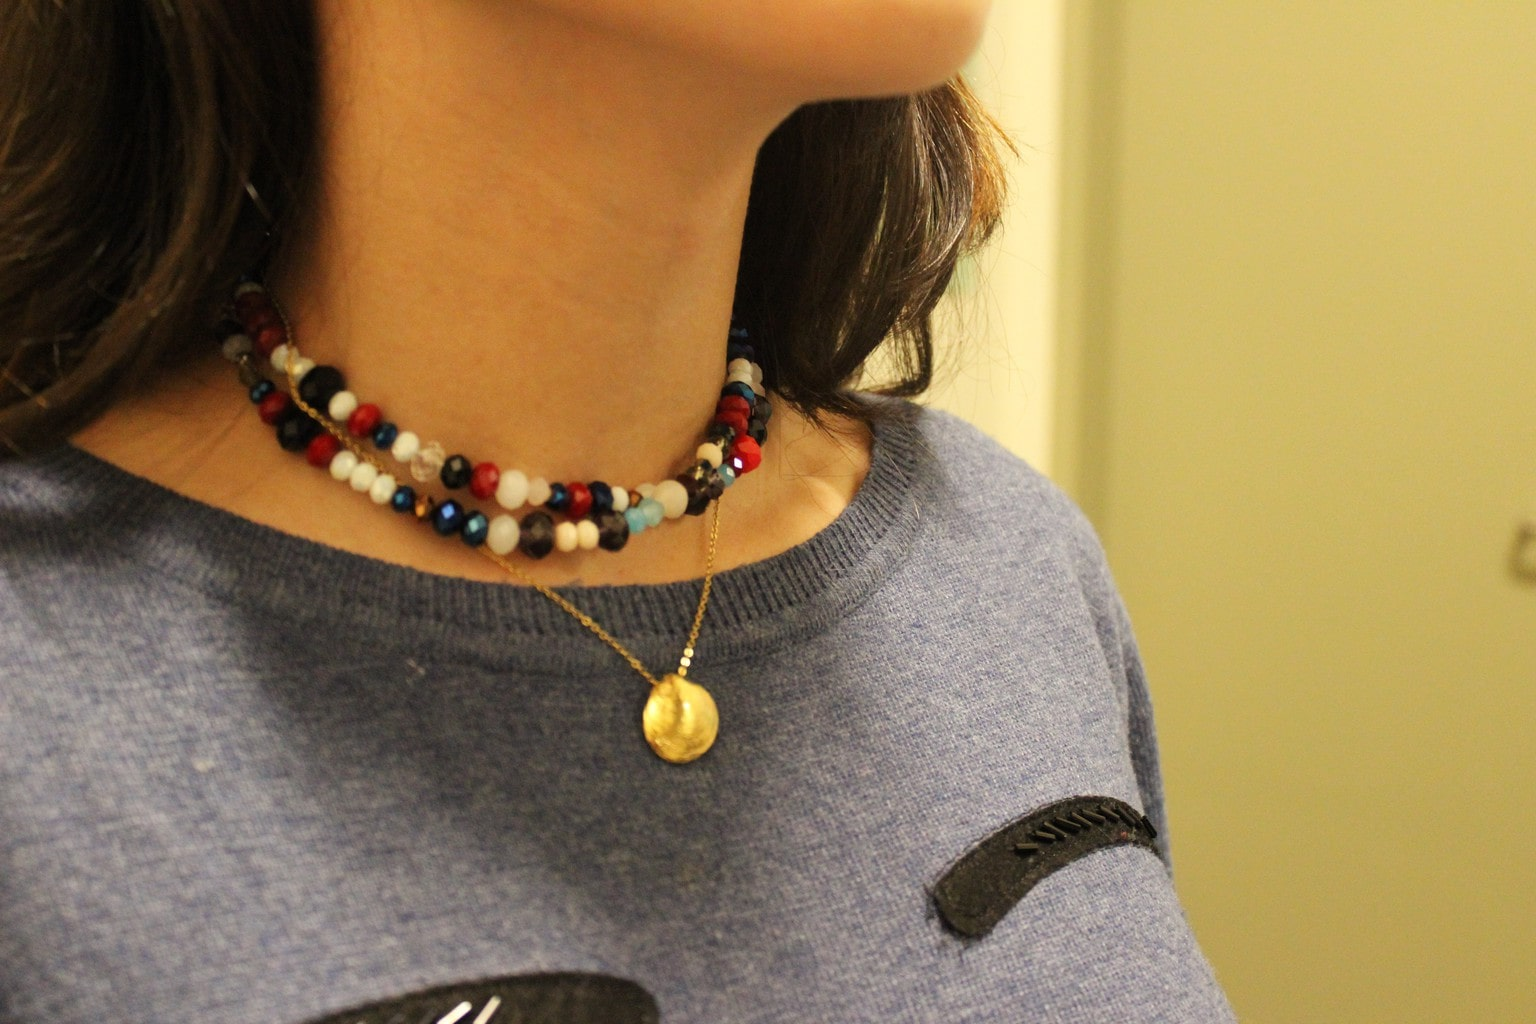 Rachel from Barnard College wears a layered beaded choker necklace with a gold pendant necklace on a delicate chain.